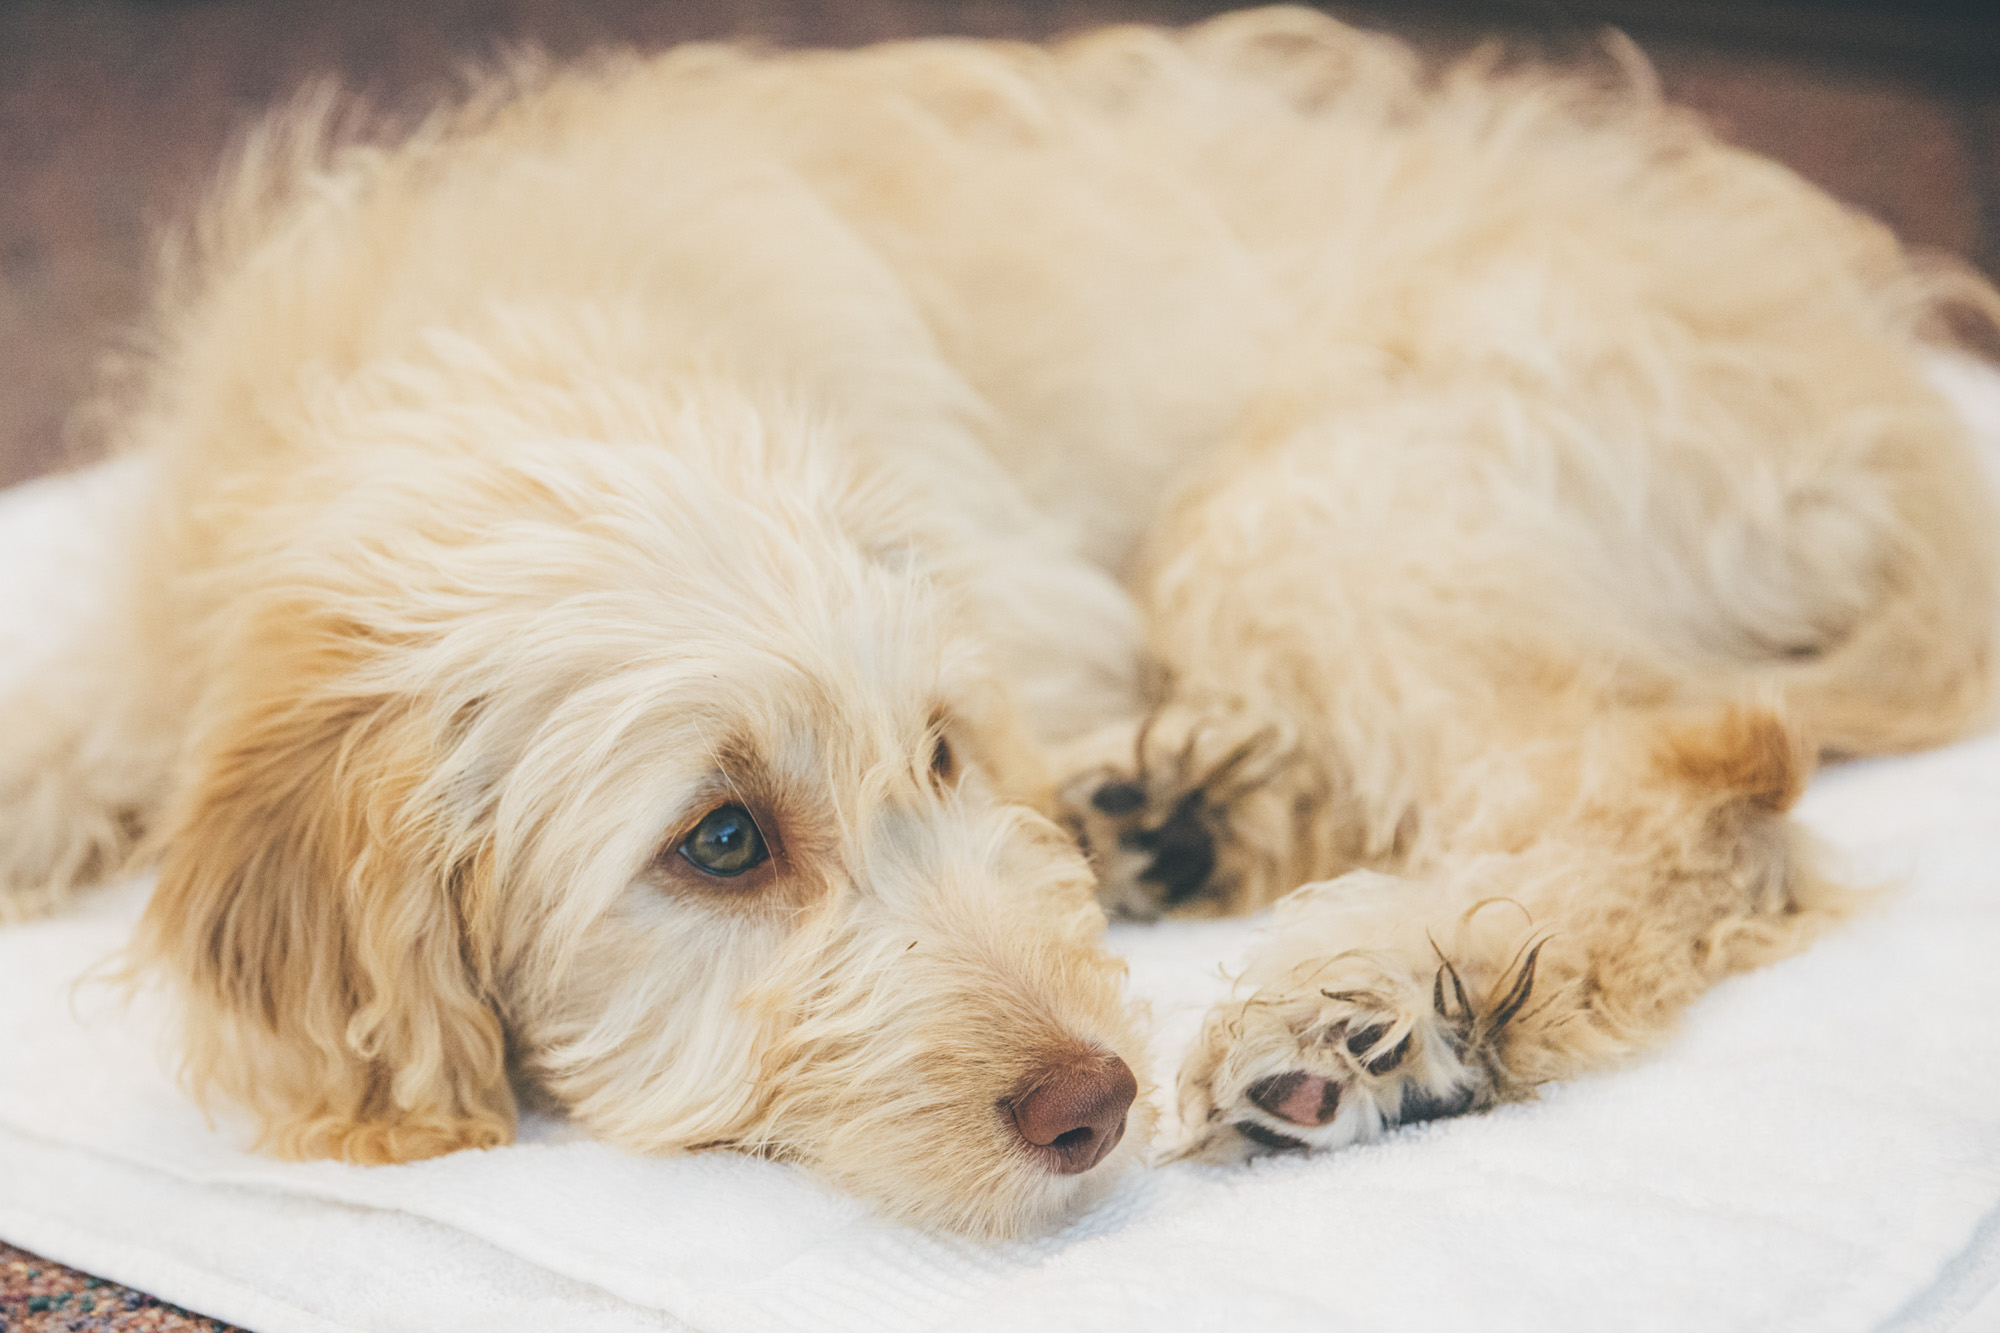 This is a very, VERY special week on RUFFined. Meet this special boy, Loki. Loki is our lovely TV host, Gaard Swanson's, latest newborn. Yes, Gaard is a new father! Loki is a three-month-old Goldendoodle who may or may not be the sweetest angel to have ever graced this earth. He may be young, but the Swanson's have already trained that brilliant pooch several tricks and is incredibly well behaved. I personally think they should change his name to Noodle, because he wiggles and army crawls around like an overcooked fettuccine noodle. Loki likes egg whites, his blanket and stealing his neighbor dog's food. He dislikes staring contests with his dad, dried kibble and raccoons.{ }The Seattle RUFFined Spotlight is a weekly profile of local pets living and loving life in the PNW. If you or someone you know has a pet you'd like featured, email us at hello@seattlerefined.com or tag #SeattleRUFFined and your furbaby could be the next spotlighted! (Image: Sunita Martini / Seattle Refined).